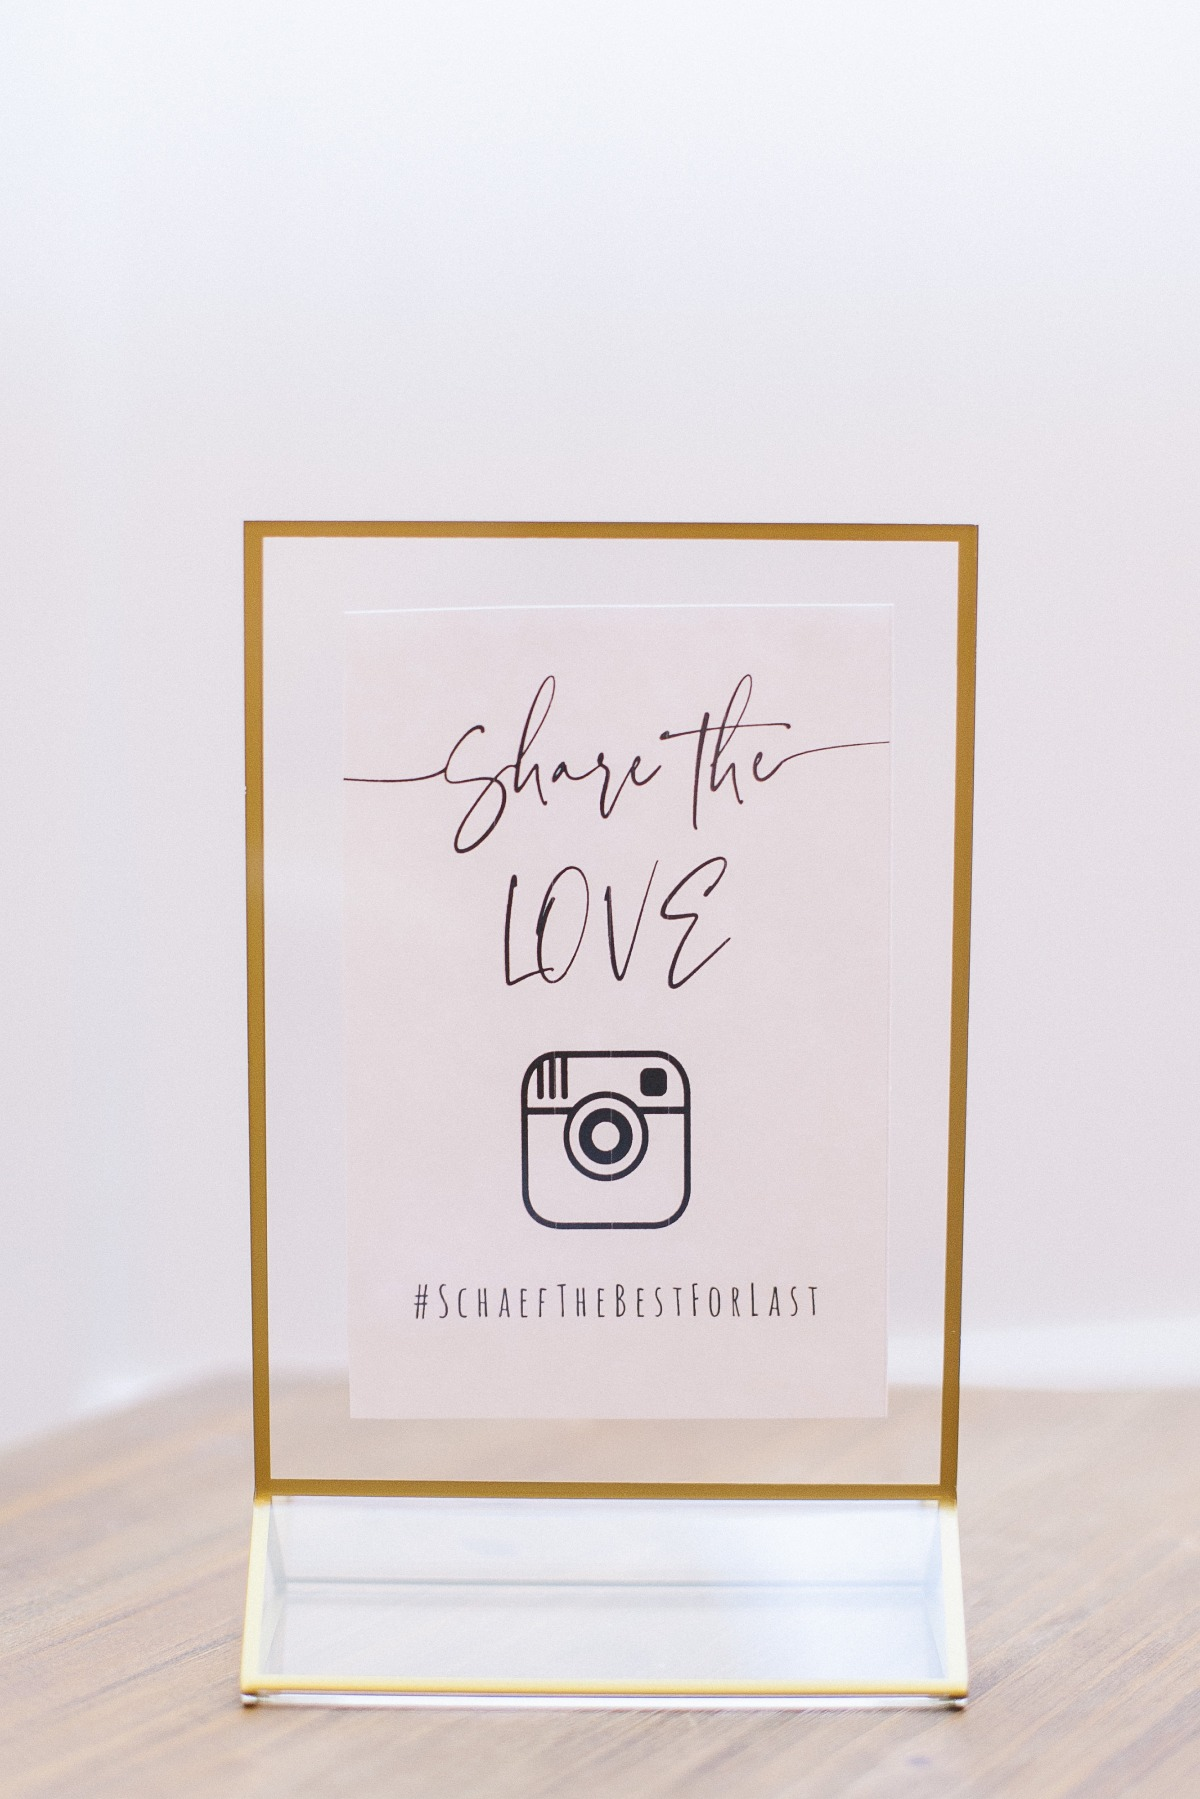 Instagram hash tag in gold frame